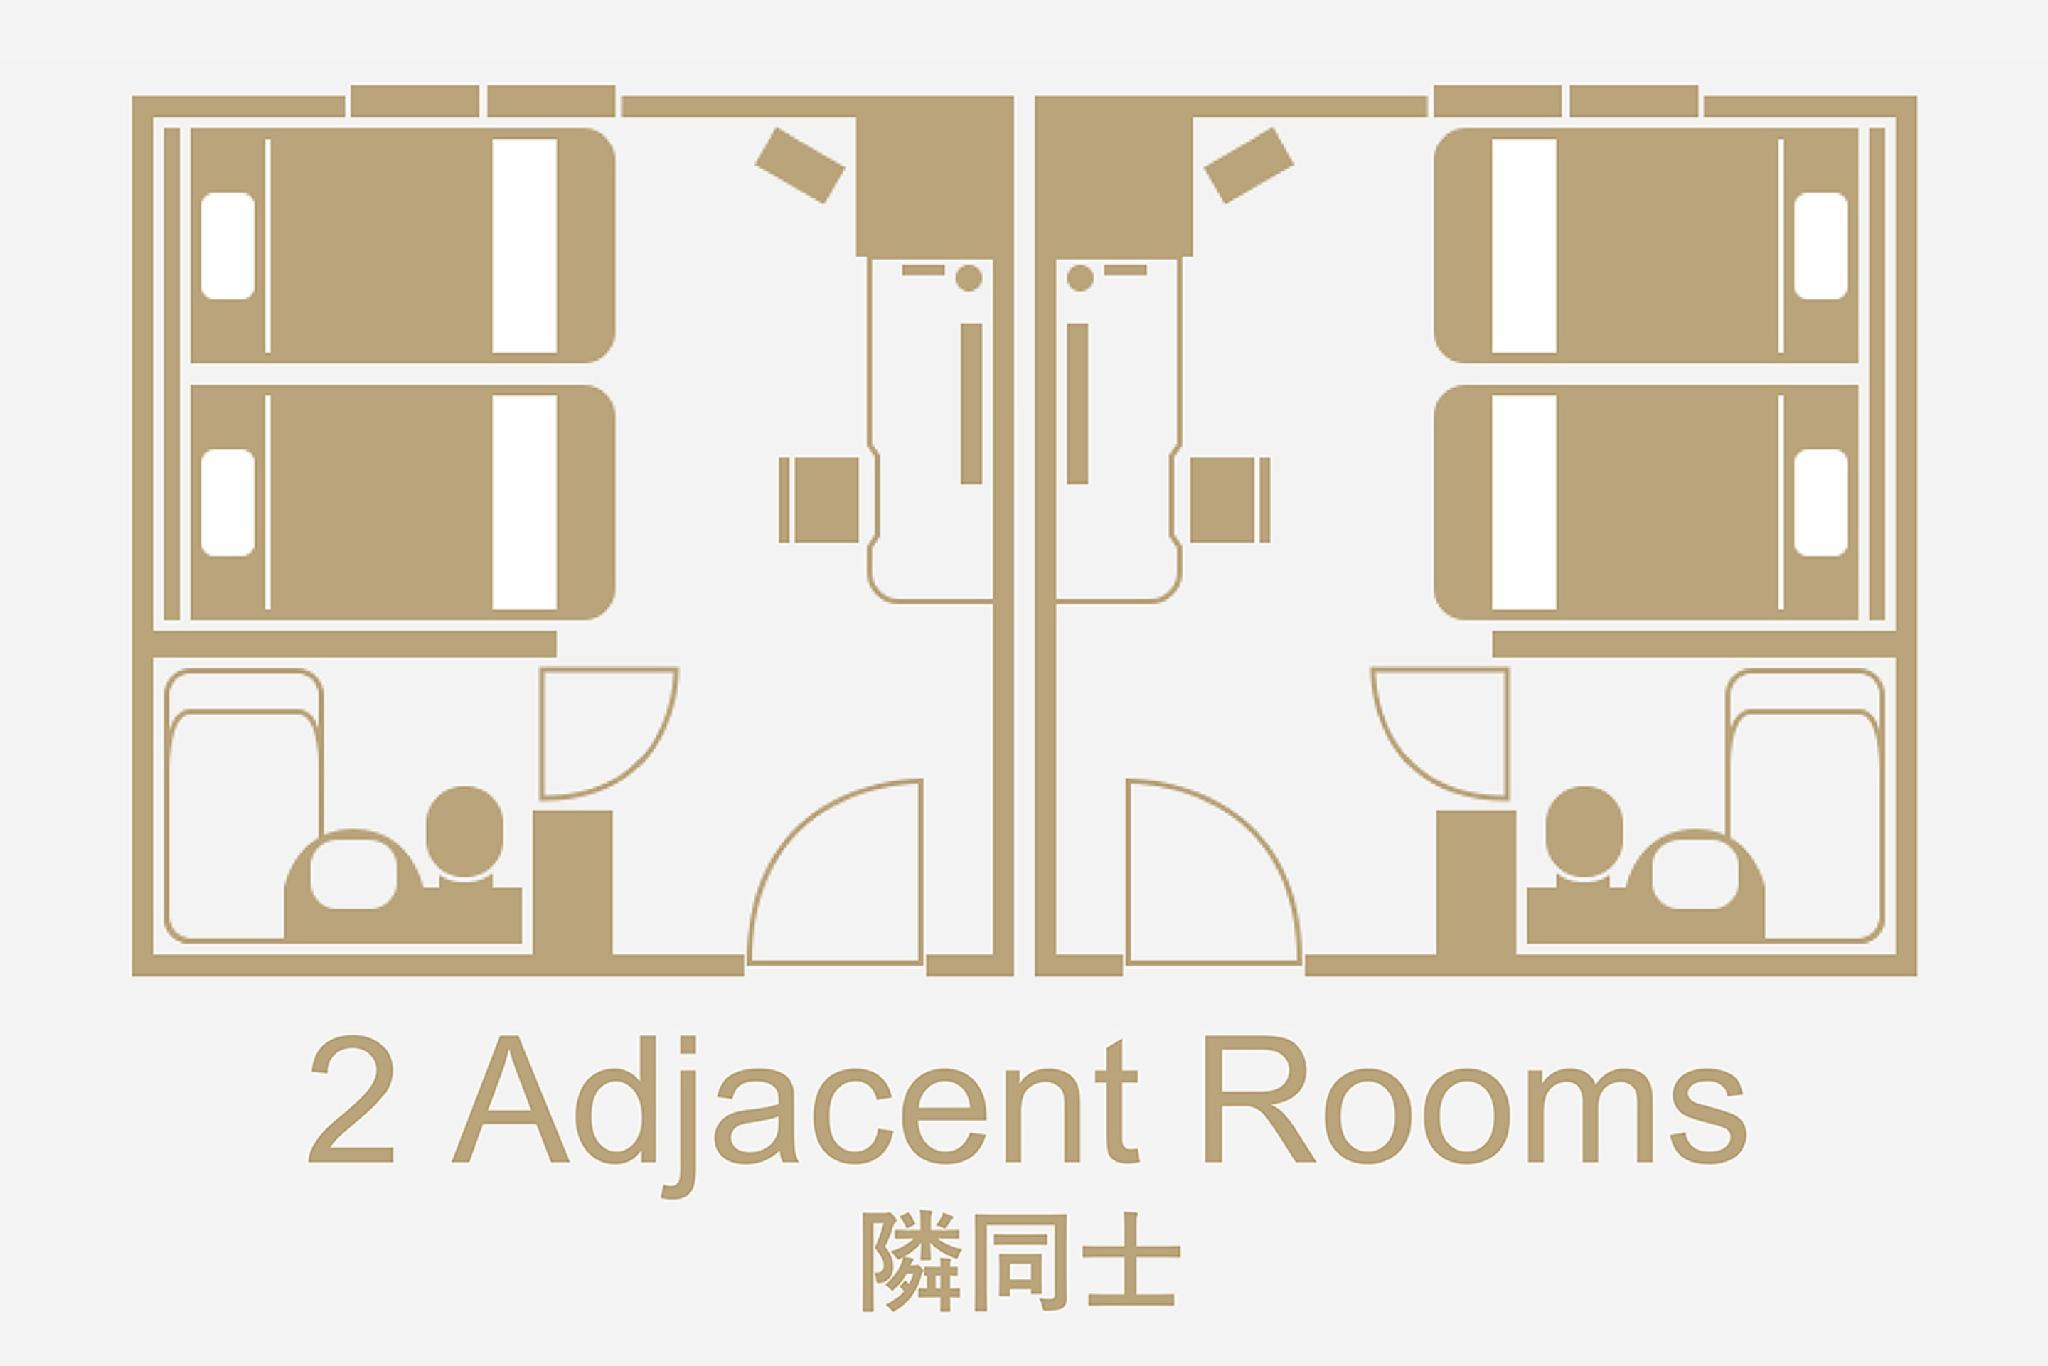 Adjoining Twin Rooms